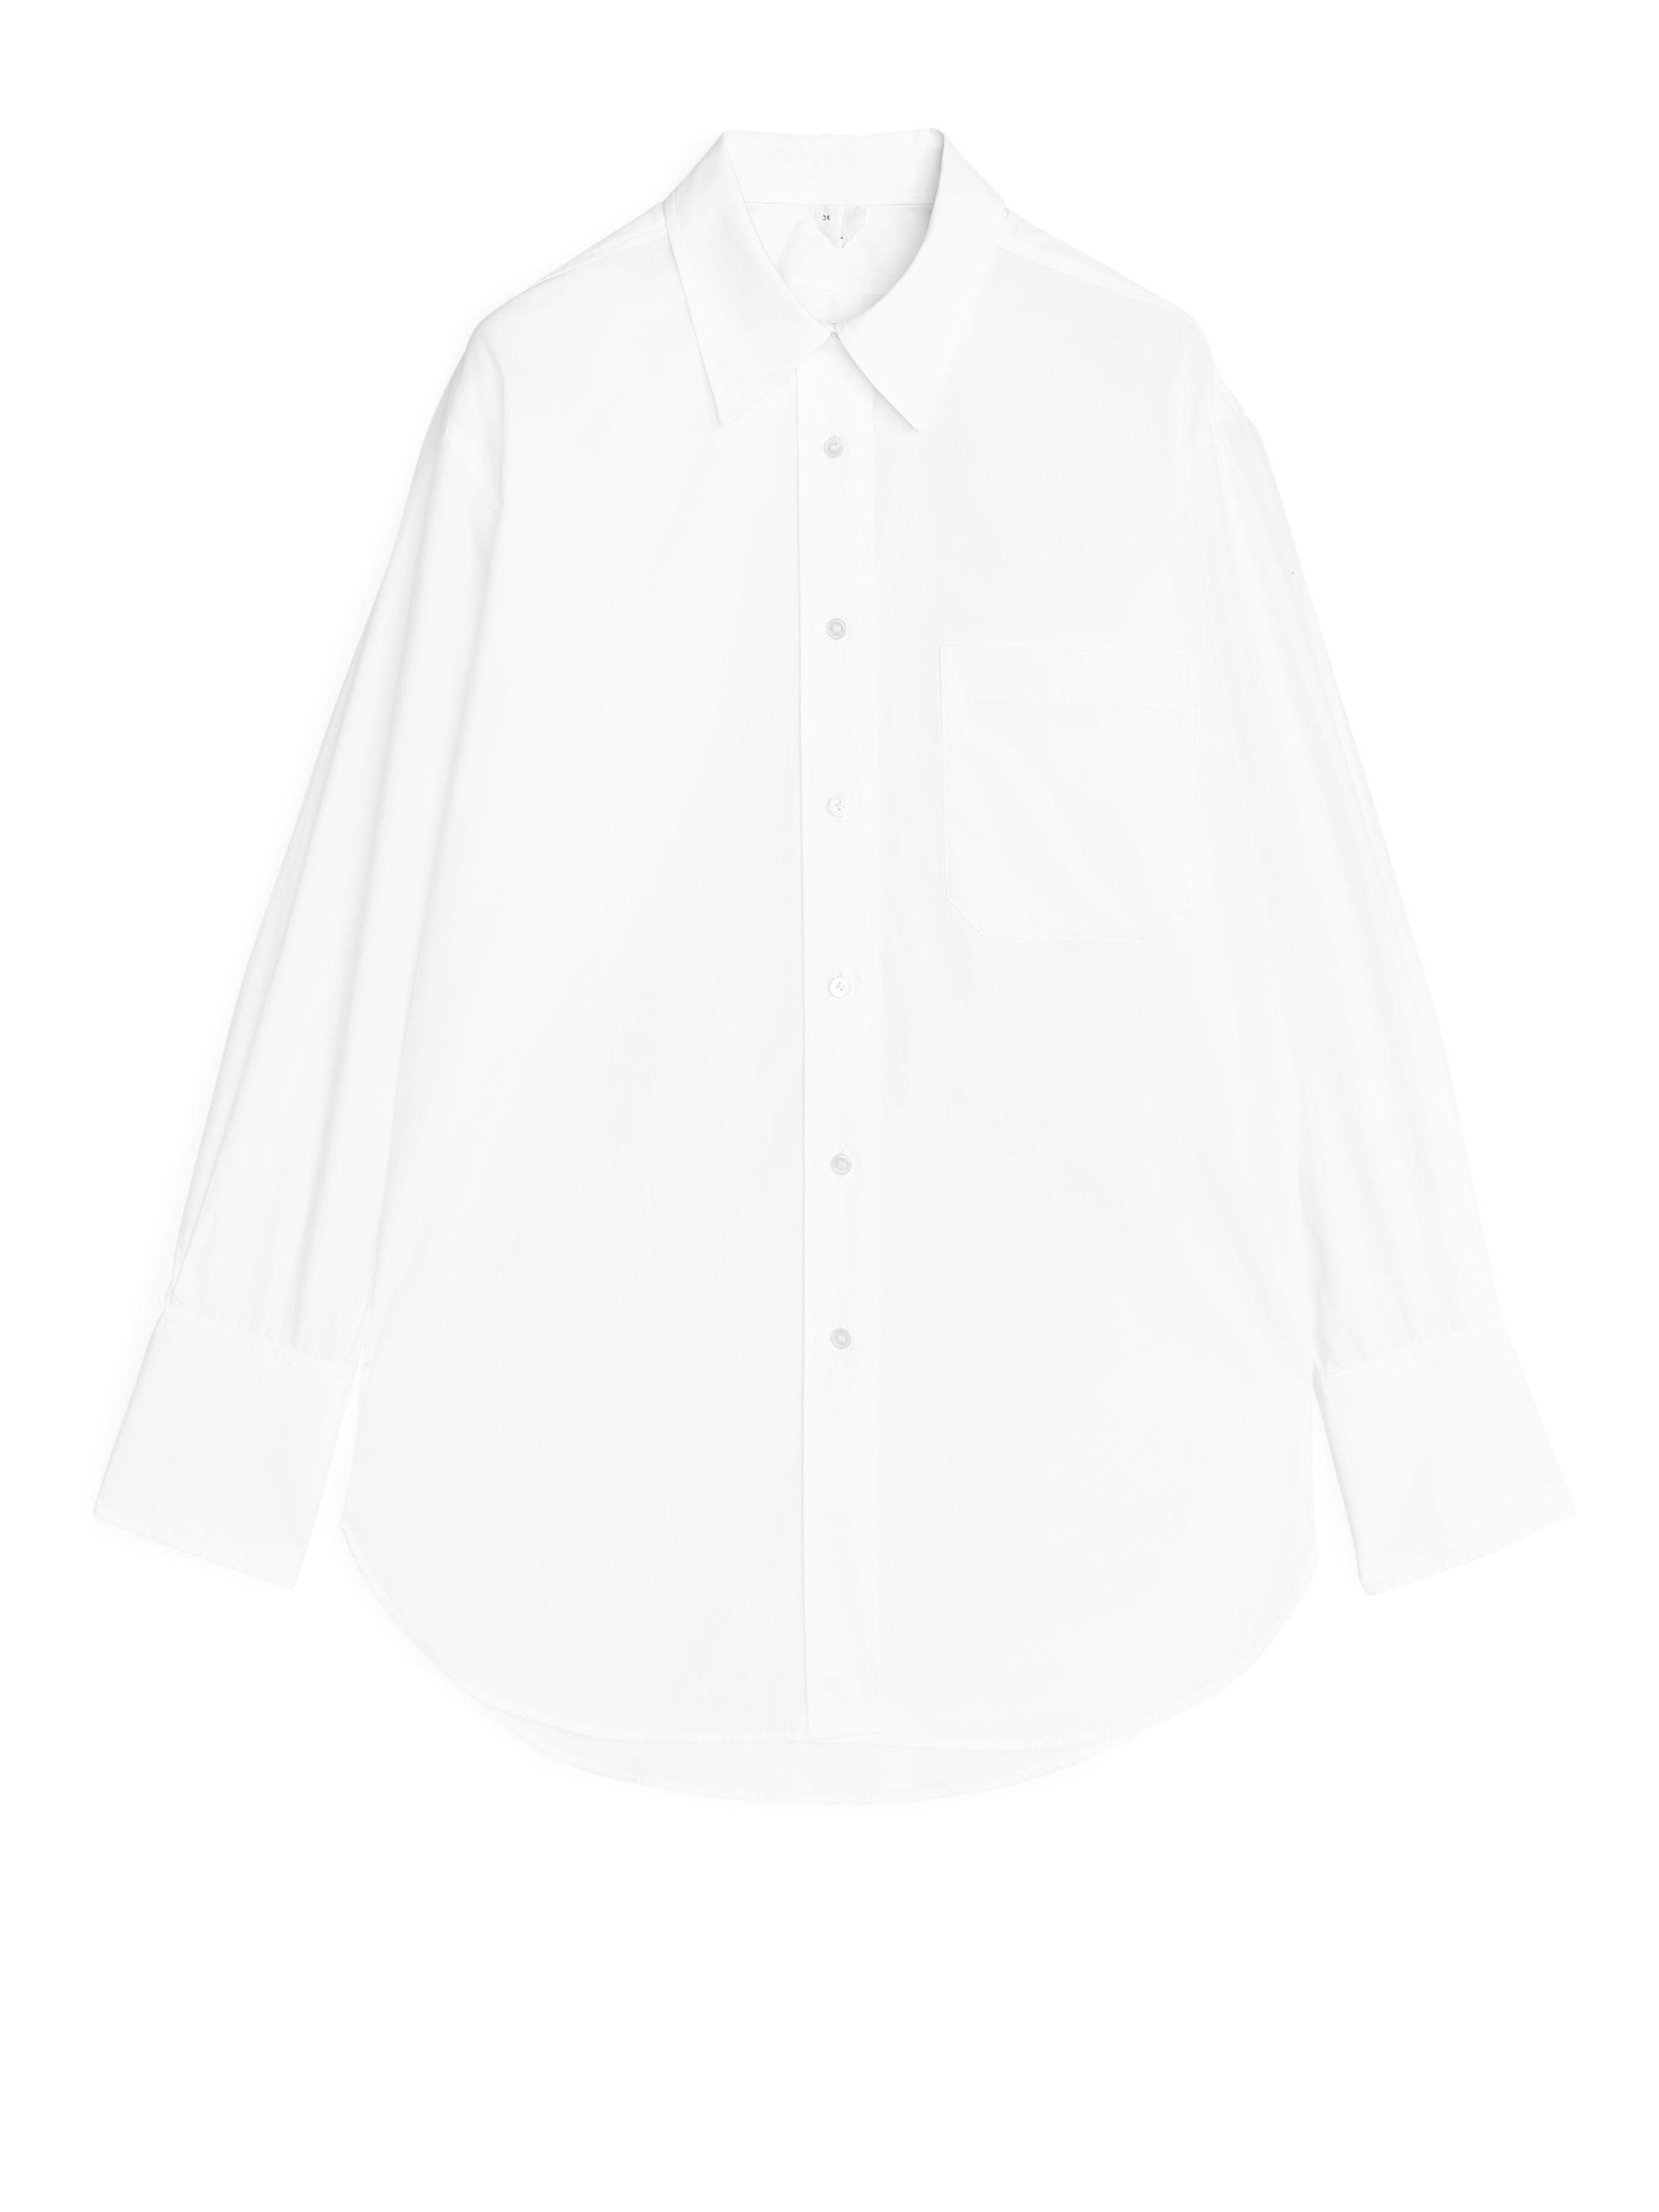 Fabric Swatch image of Arket oversized poplin shirt in white